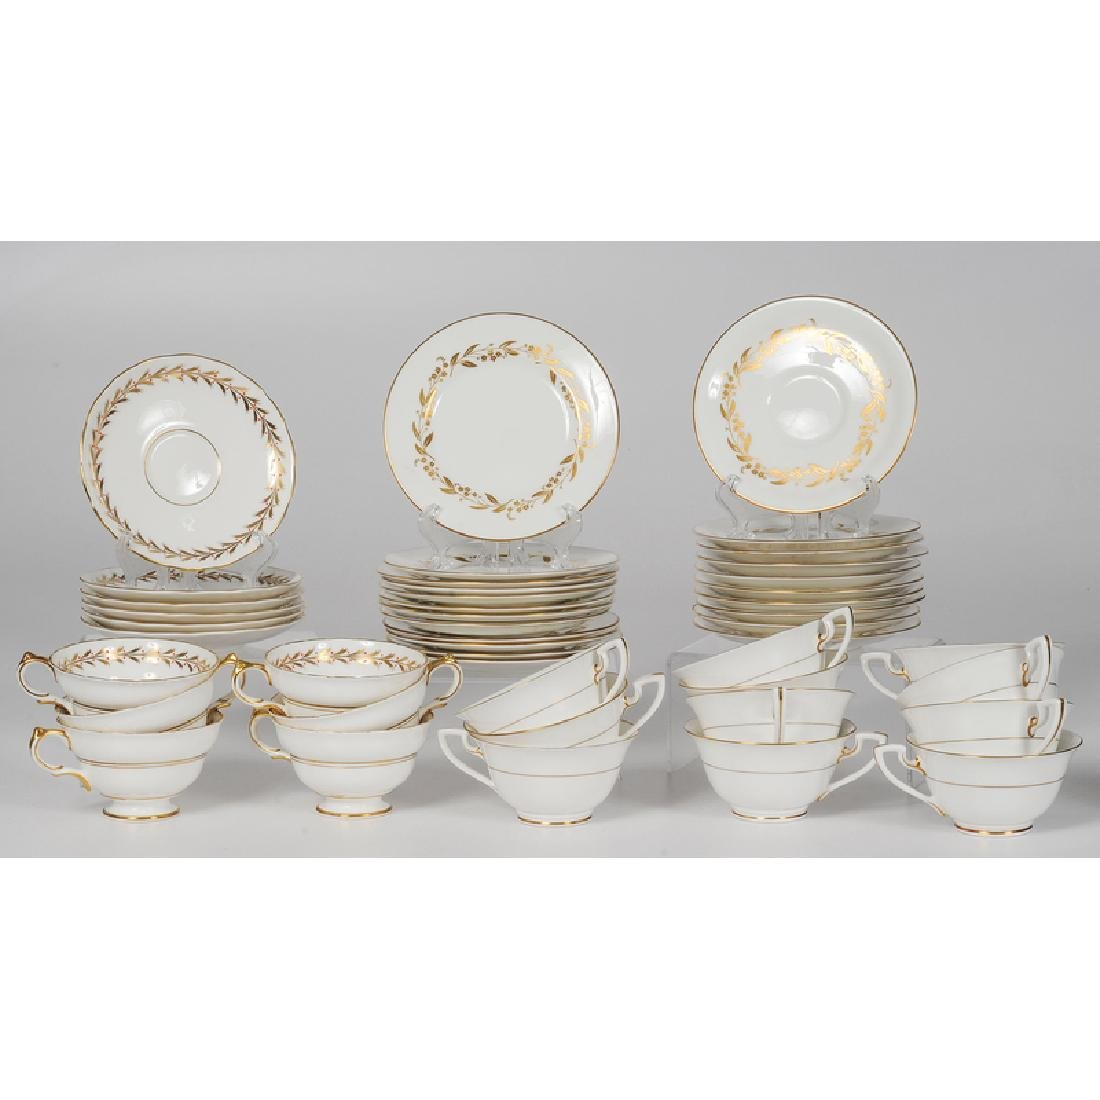 Worcester and Copeland Porcelain Tea Sets - 5